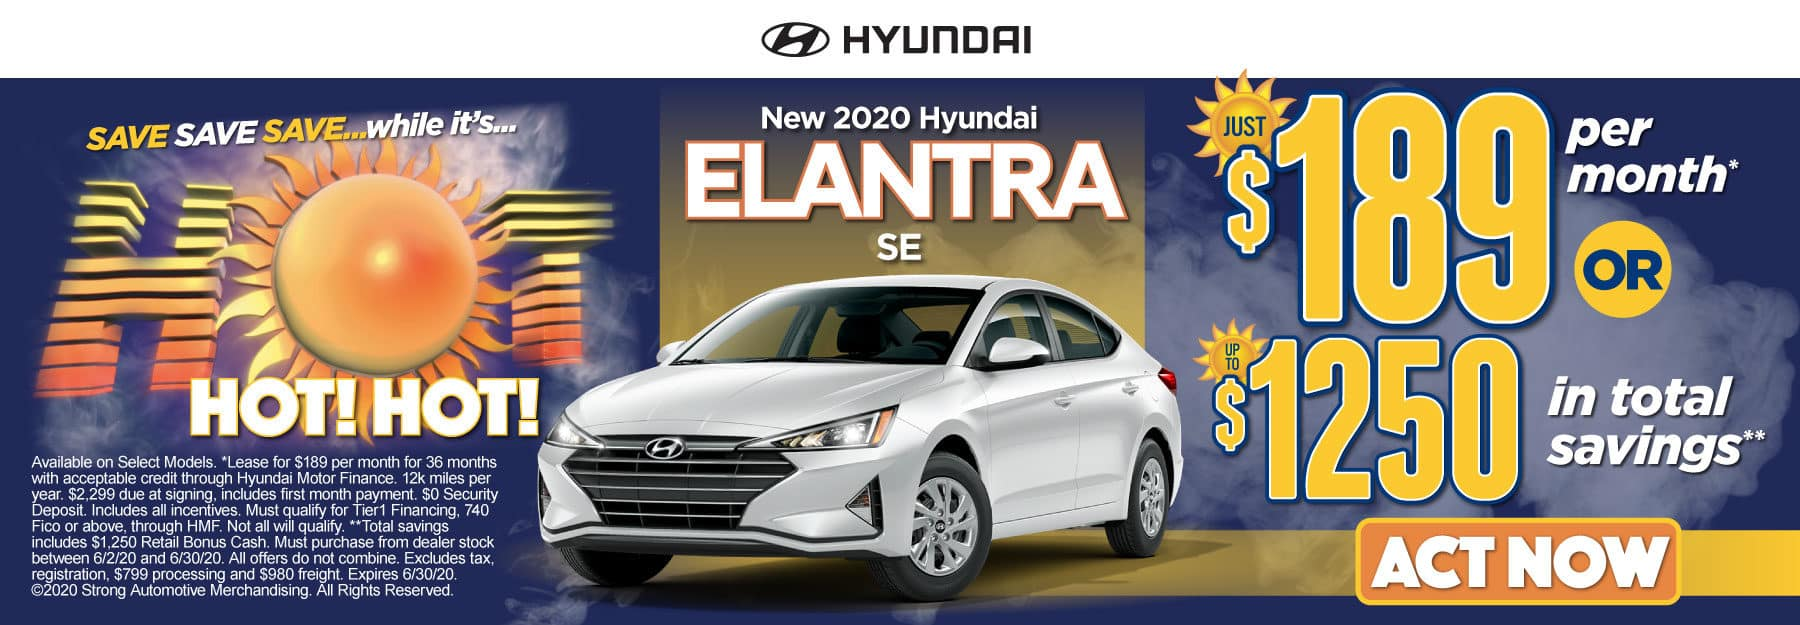 New 2020 Hyundai Elantra - Just $189 per month or up to $1250 in total savings - Click to View Inventory